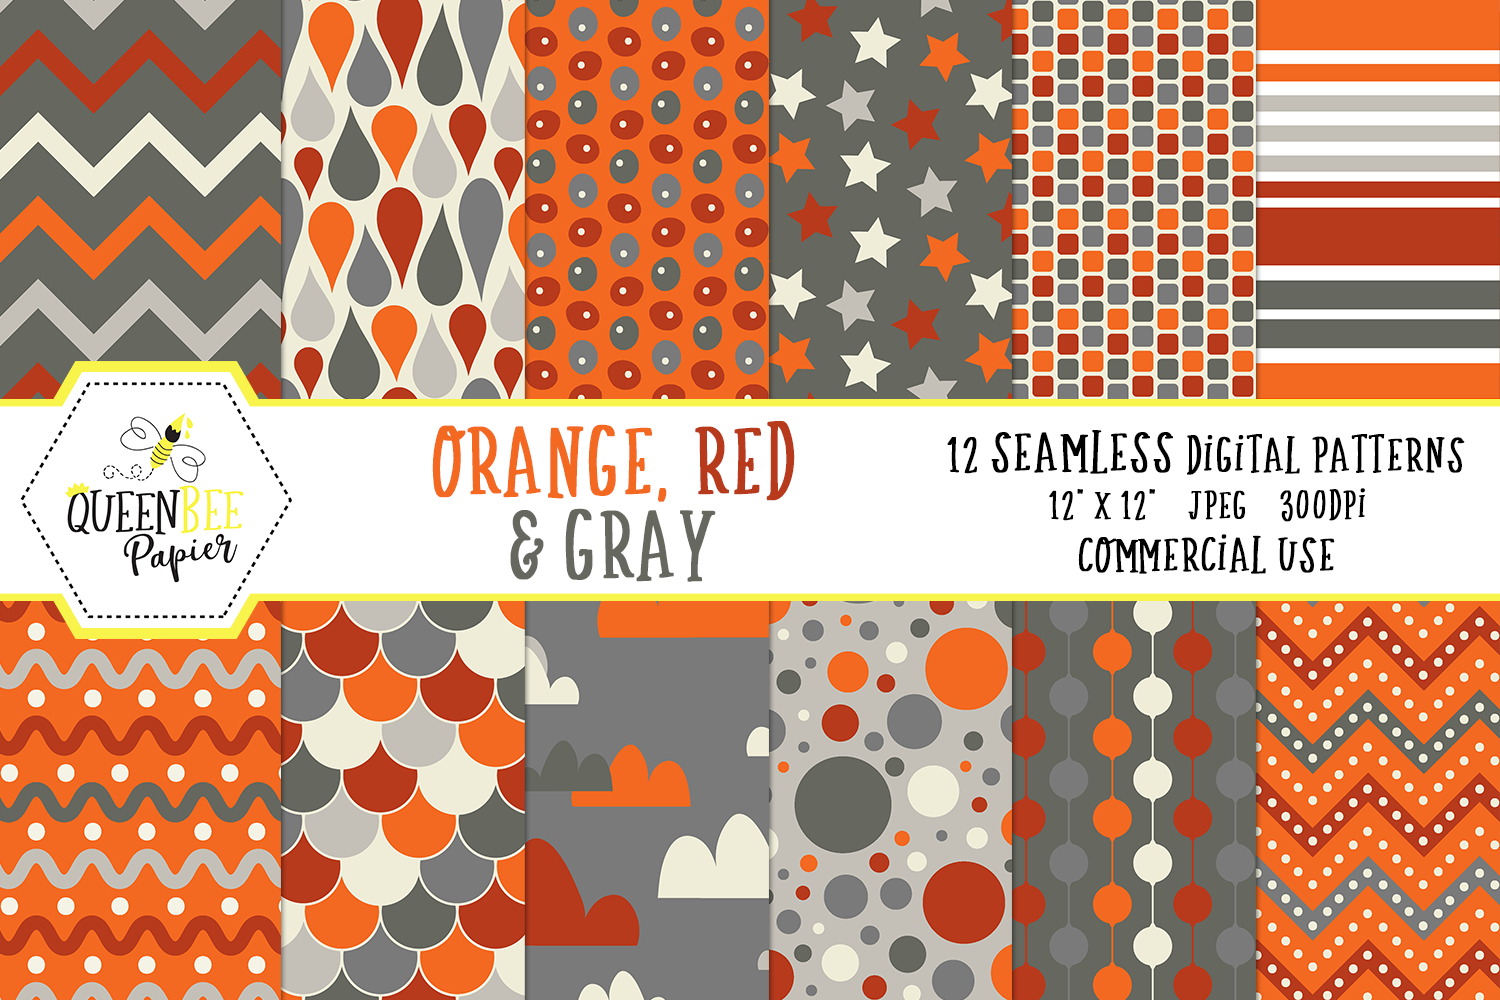 Download Free Orange Red Grey Seamless Boy Digital Paper Graphic By Queen for Cricut Explore, Silhouette and other cutting machines.